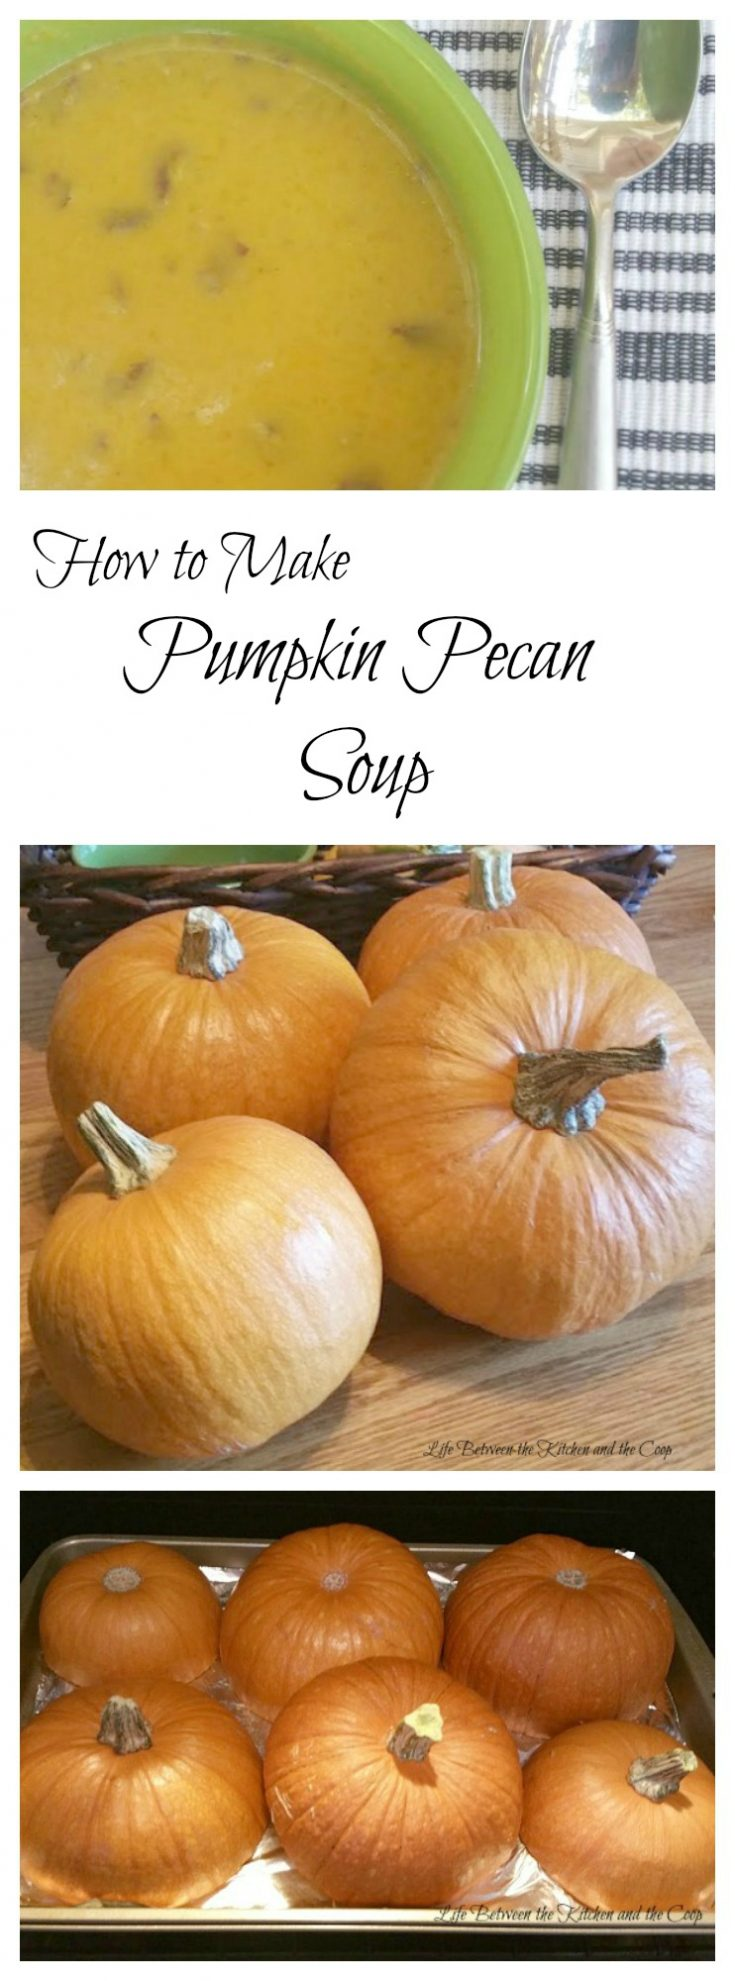 If you are looking for a yummy fall comfort food, you've gotta try my Pumpkin Pecan Soup!  It's warm and creamy with crunchy pecans added.  It is such a tasty, filling soup for those chilly fall nights.  #pumpkin #pecan #pumpkinrecipes  #soup #souprecipes #pecanrecipes #comfortfood #fallrecipes